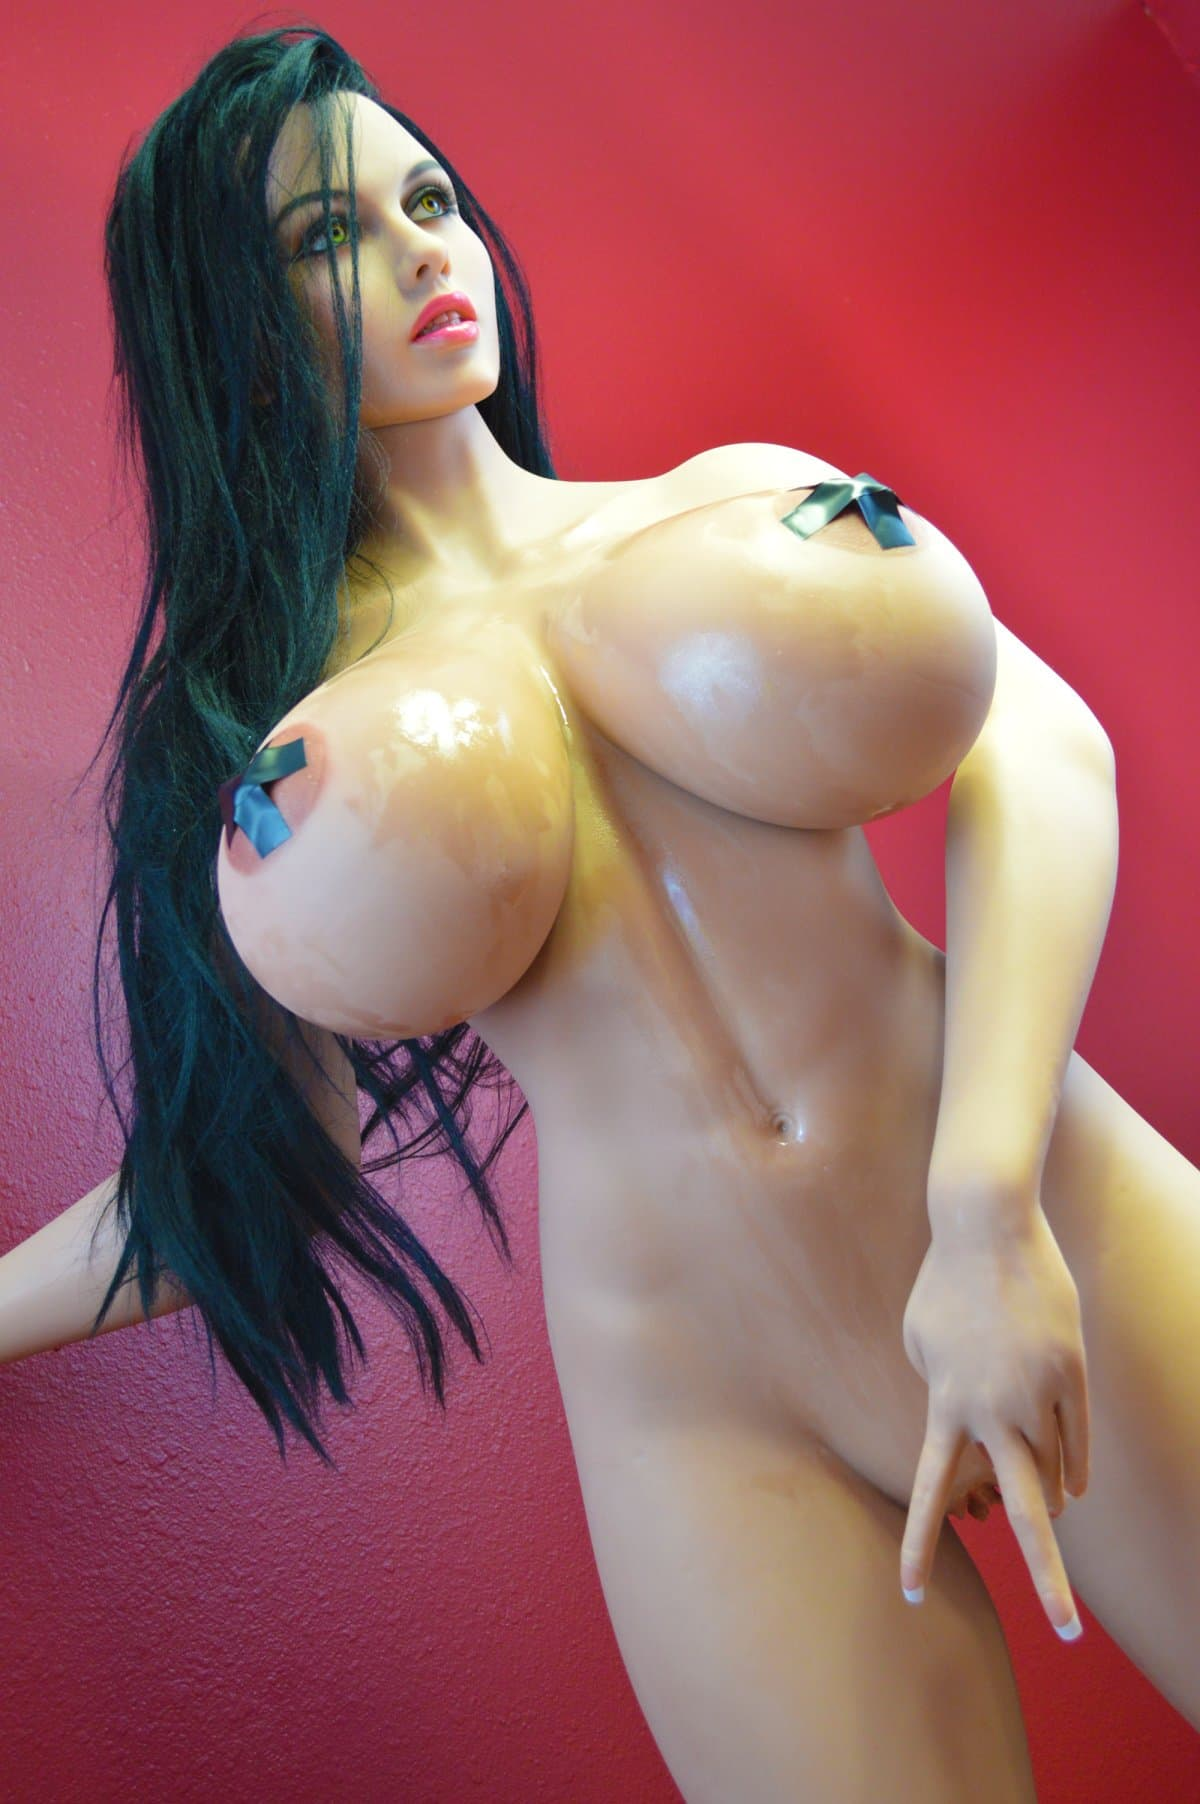 alley 170cm black hair giant massive tits athletic tpe wm sex doll(7)